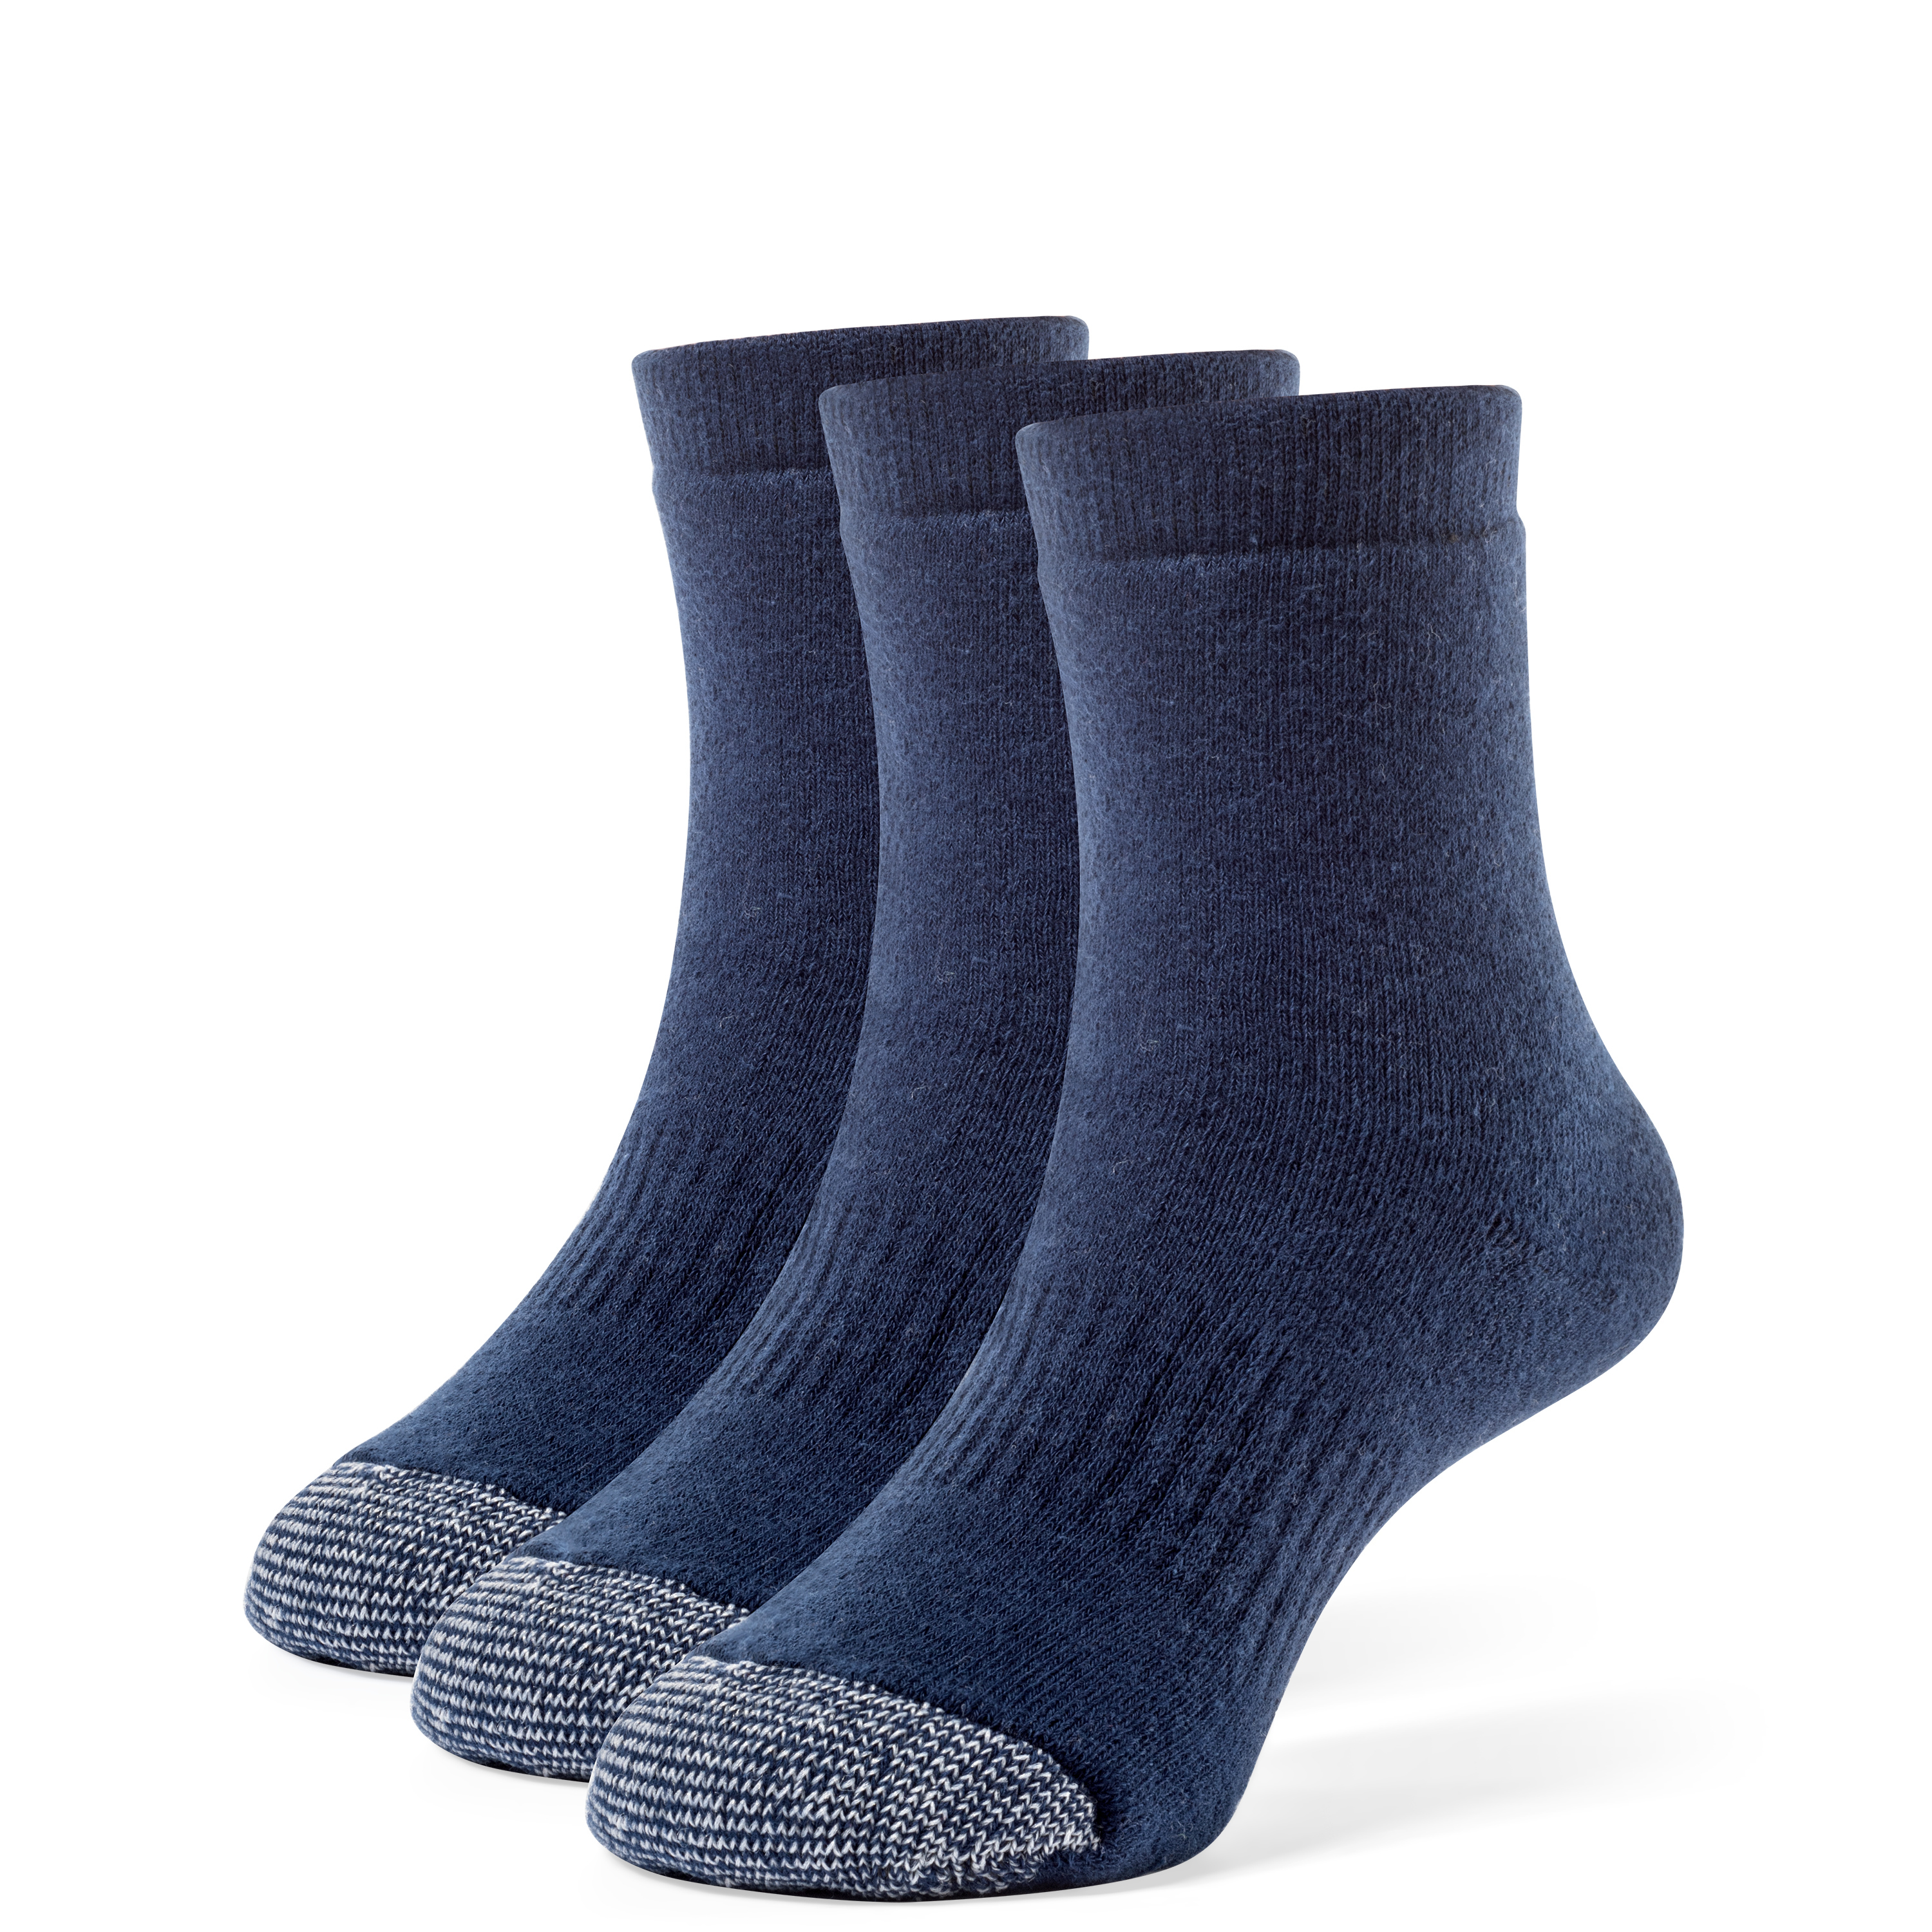 Galiva Boys' Cotton Extra Soft Quarter Cushion Socks - 3 Pairs